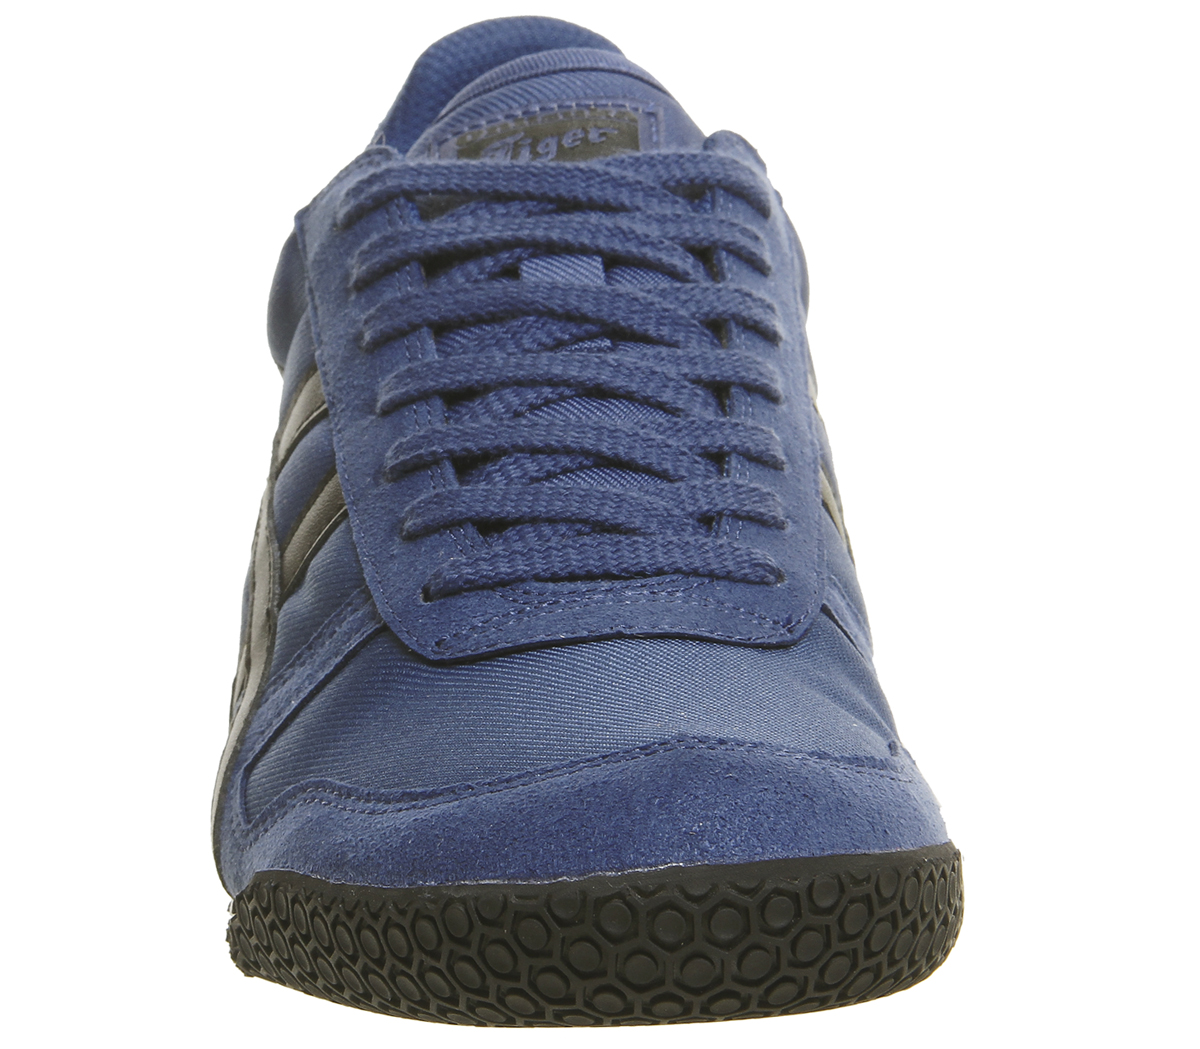 Onitsuka Tiger Tiger Onitsuka Ultimate 81 Trainers MIDNIGHT Blau BLACK Trainers Schuhes a037de